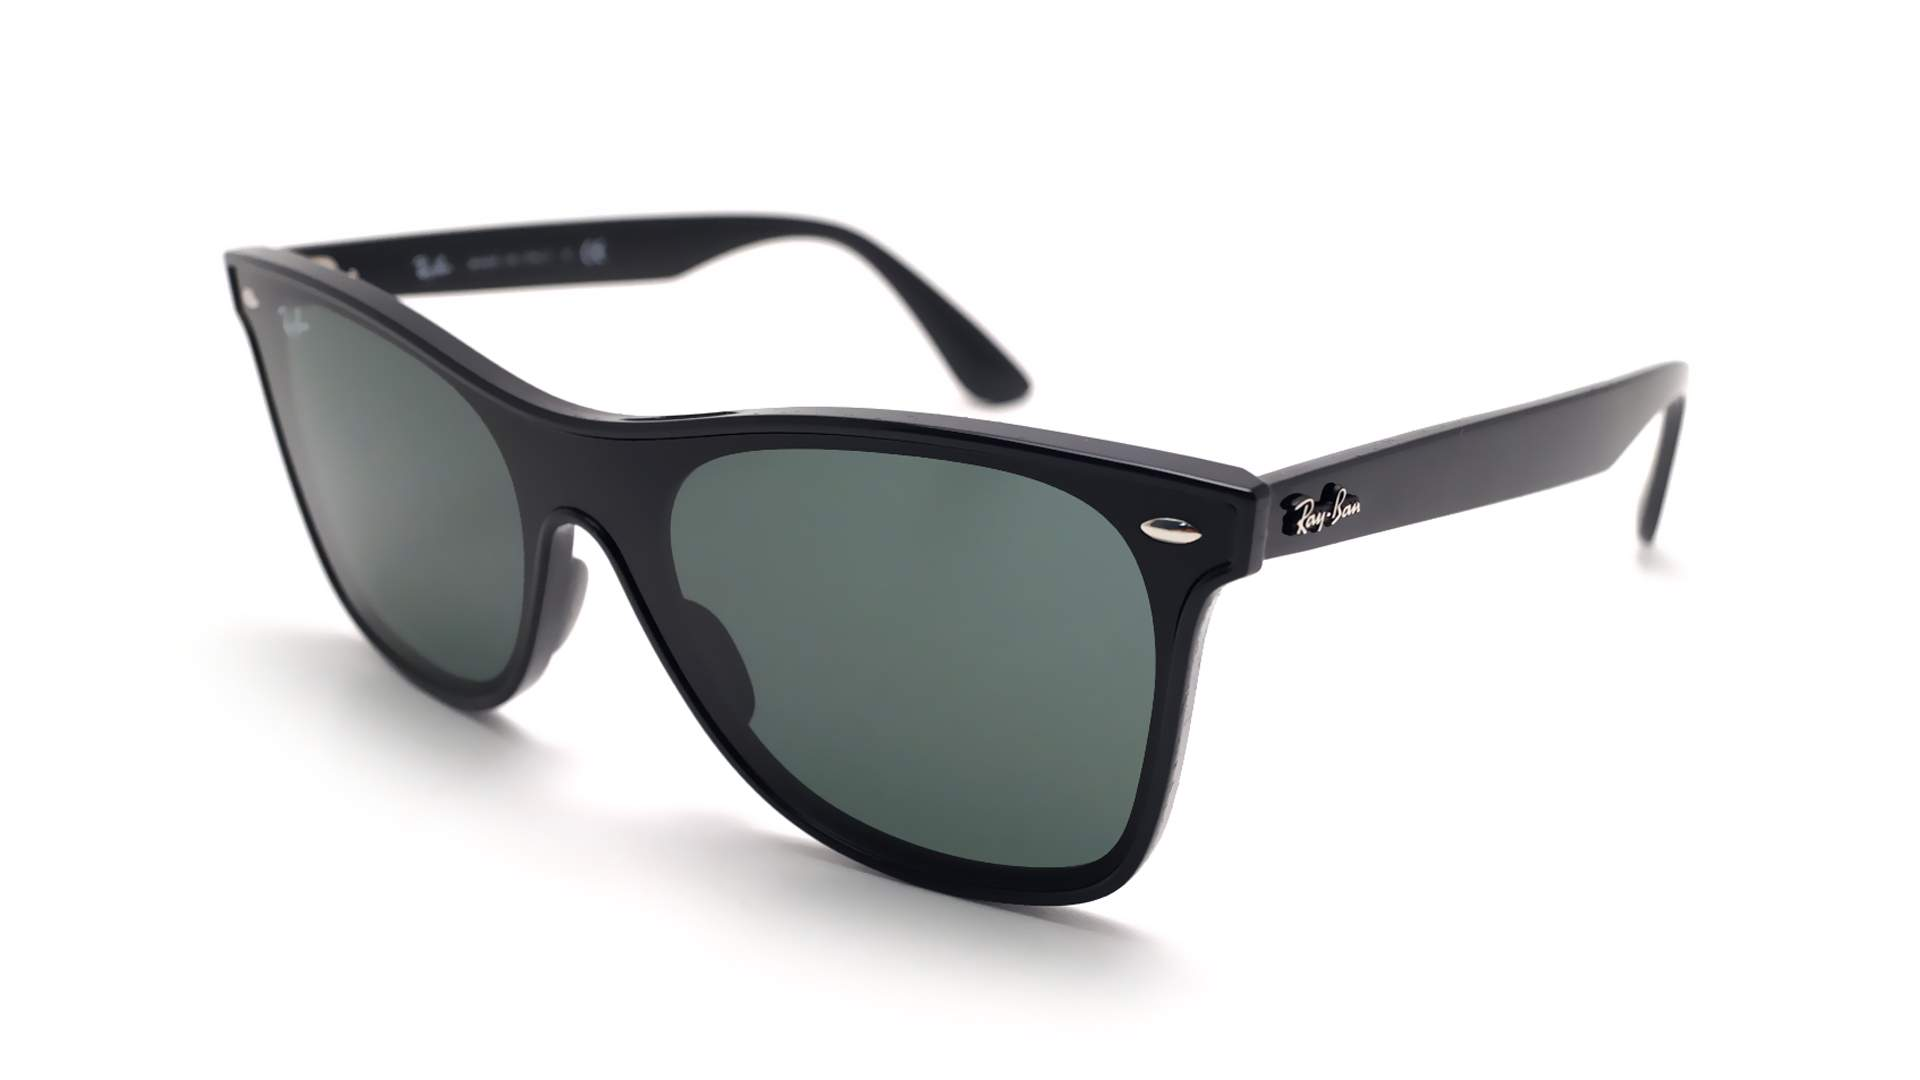 Sunglasses Ray-Ban Wayfarer Blaze Black RB4440N 601 71 41-18 Medium 7ca7de48c59